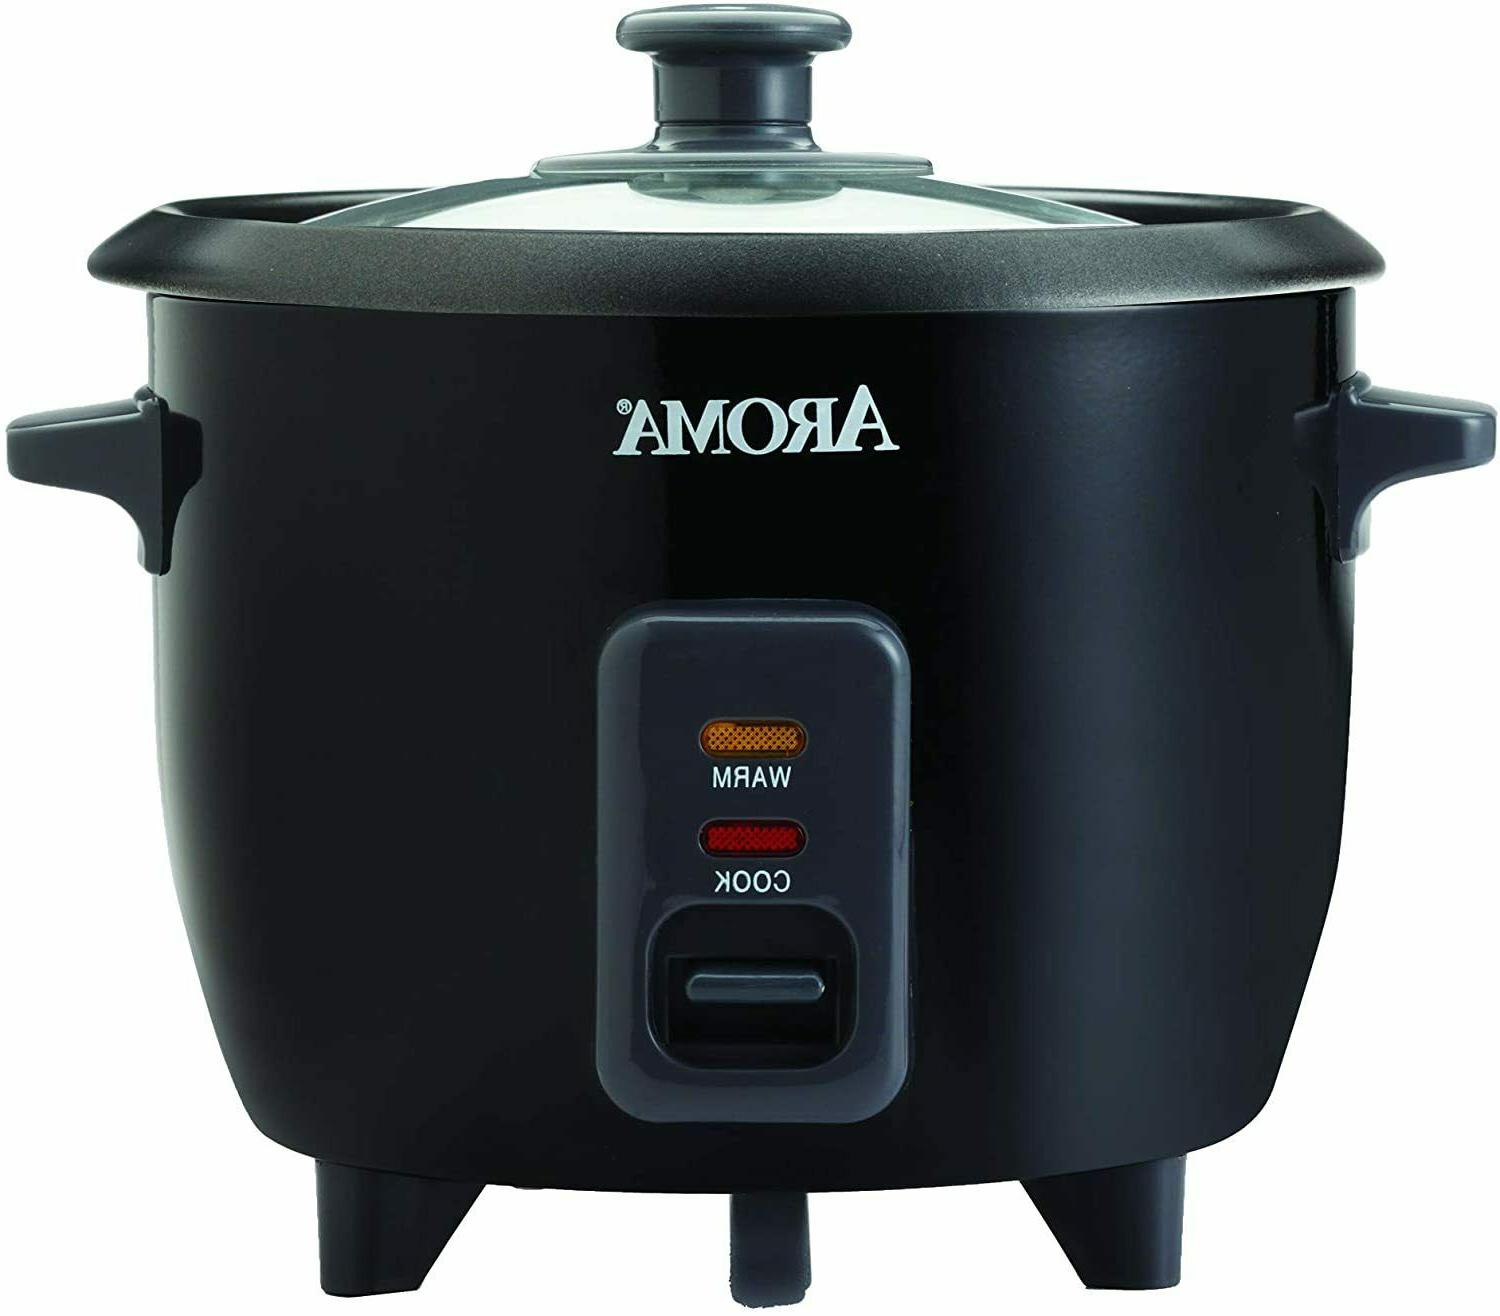 2-6 Cups Cooked Rice Cooker Multicooker Steamer Housewares A